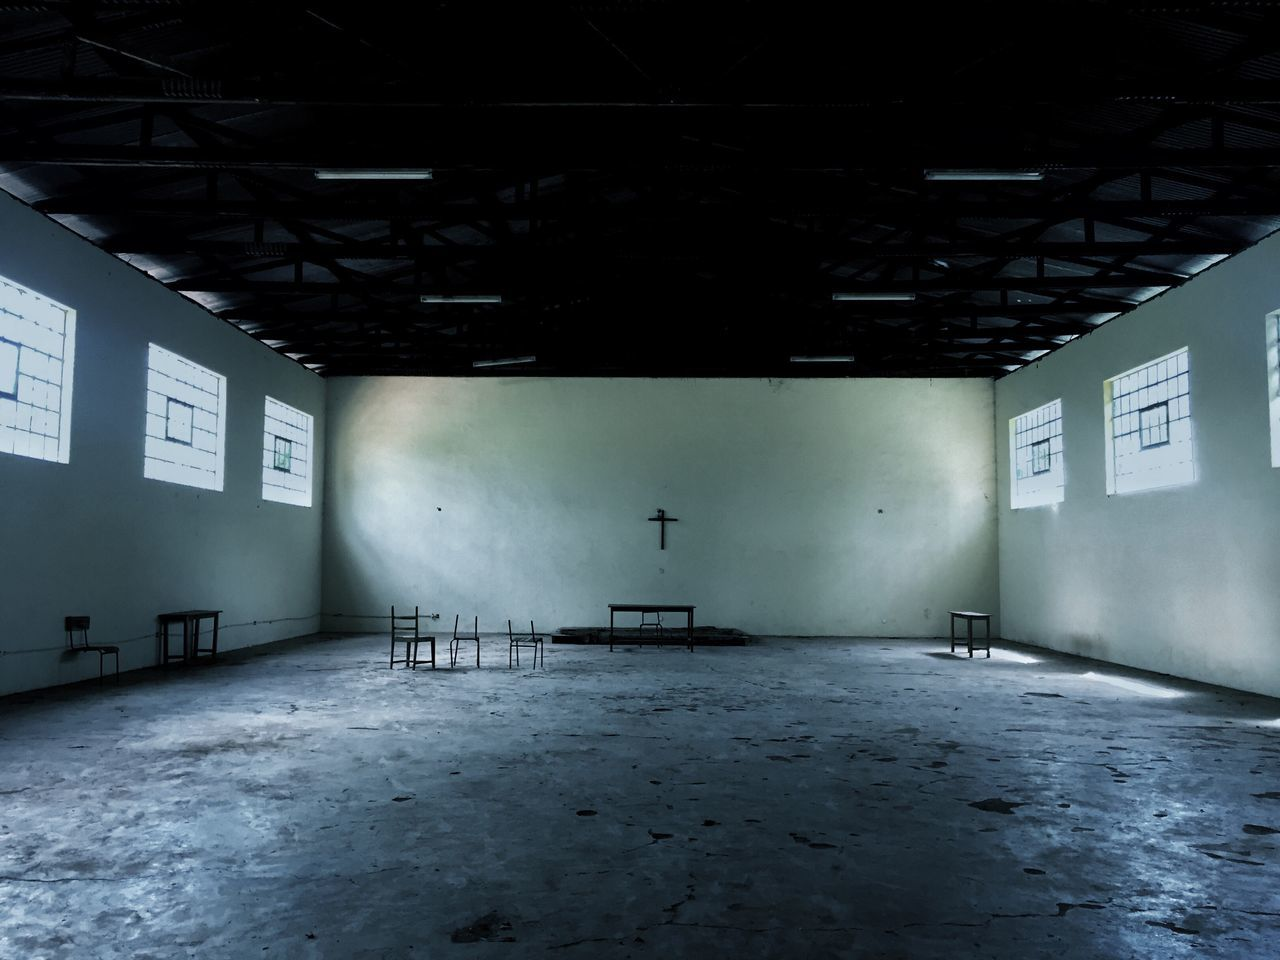 EyeEmNewHere Indoors  Empty No People Architecture Day Church Kenya Africa Room Building School Religion Religious  Art Art Is Everywhere The Architect - 2017 EyeEm Awards